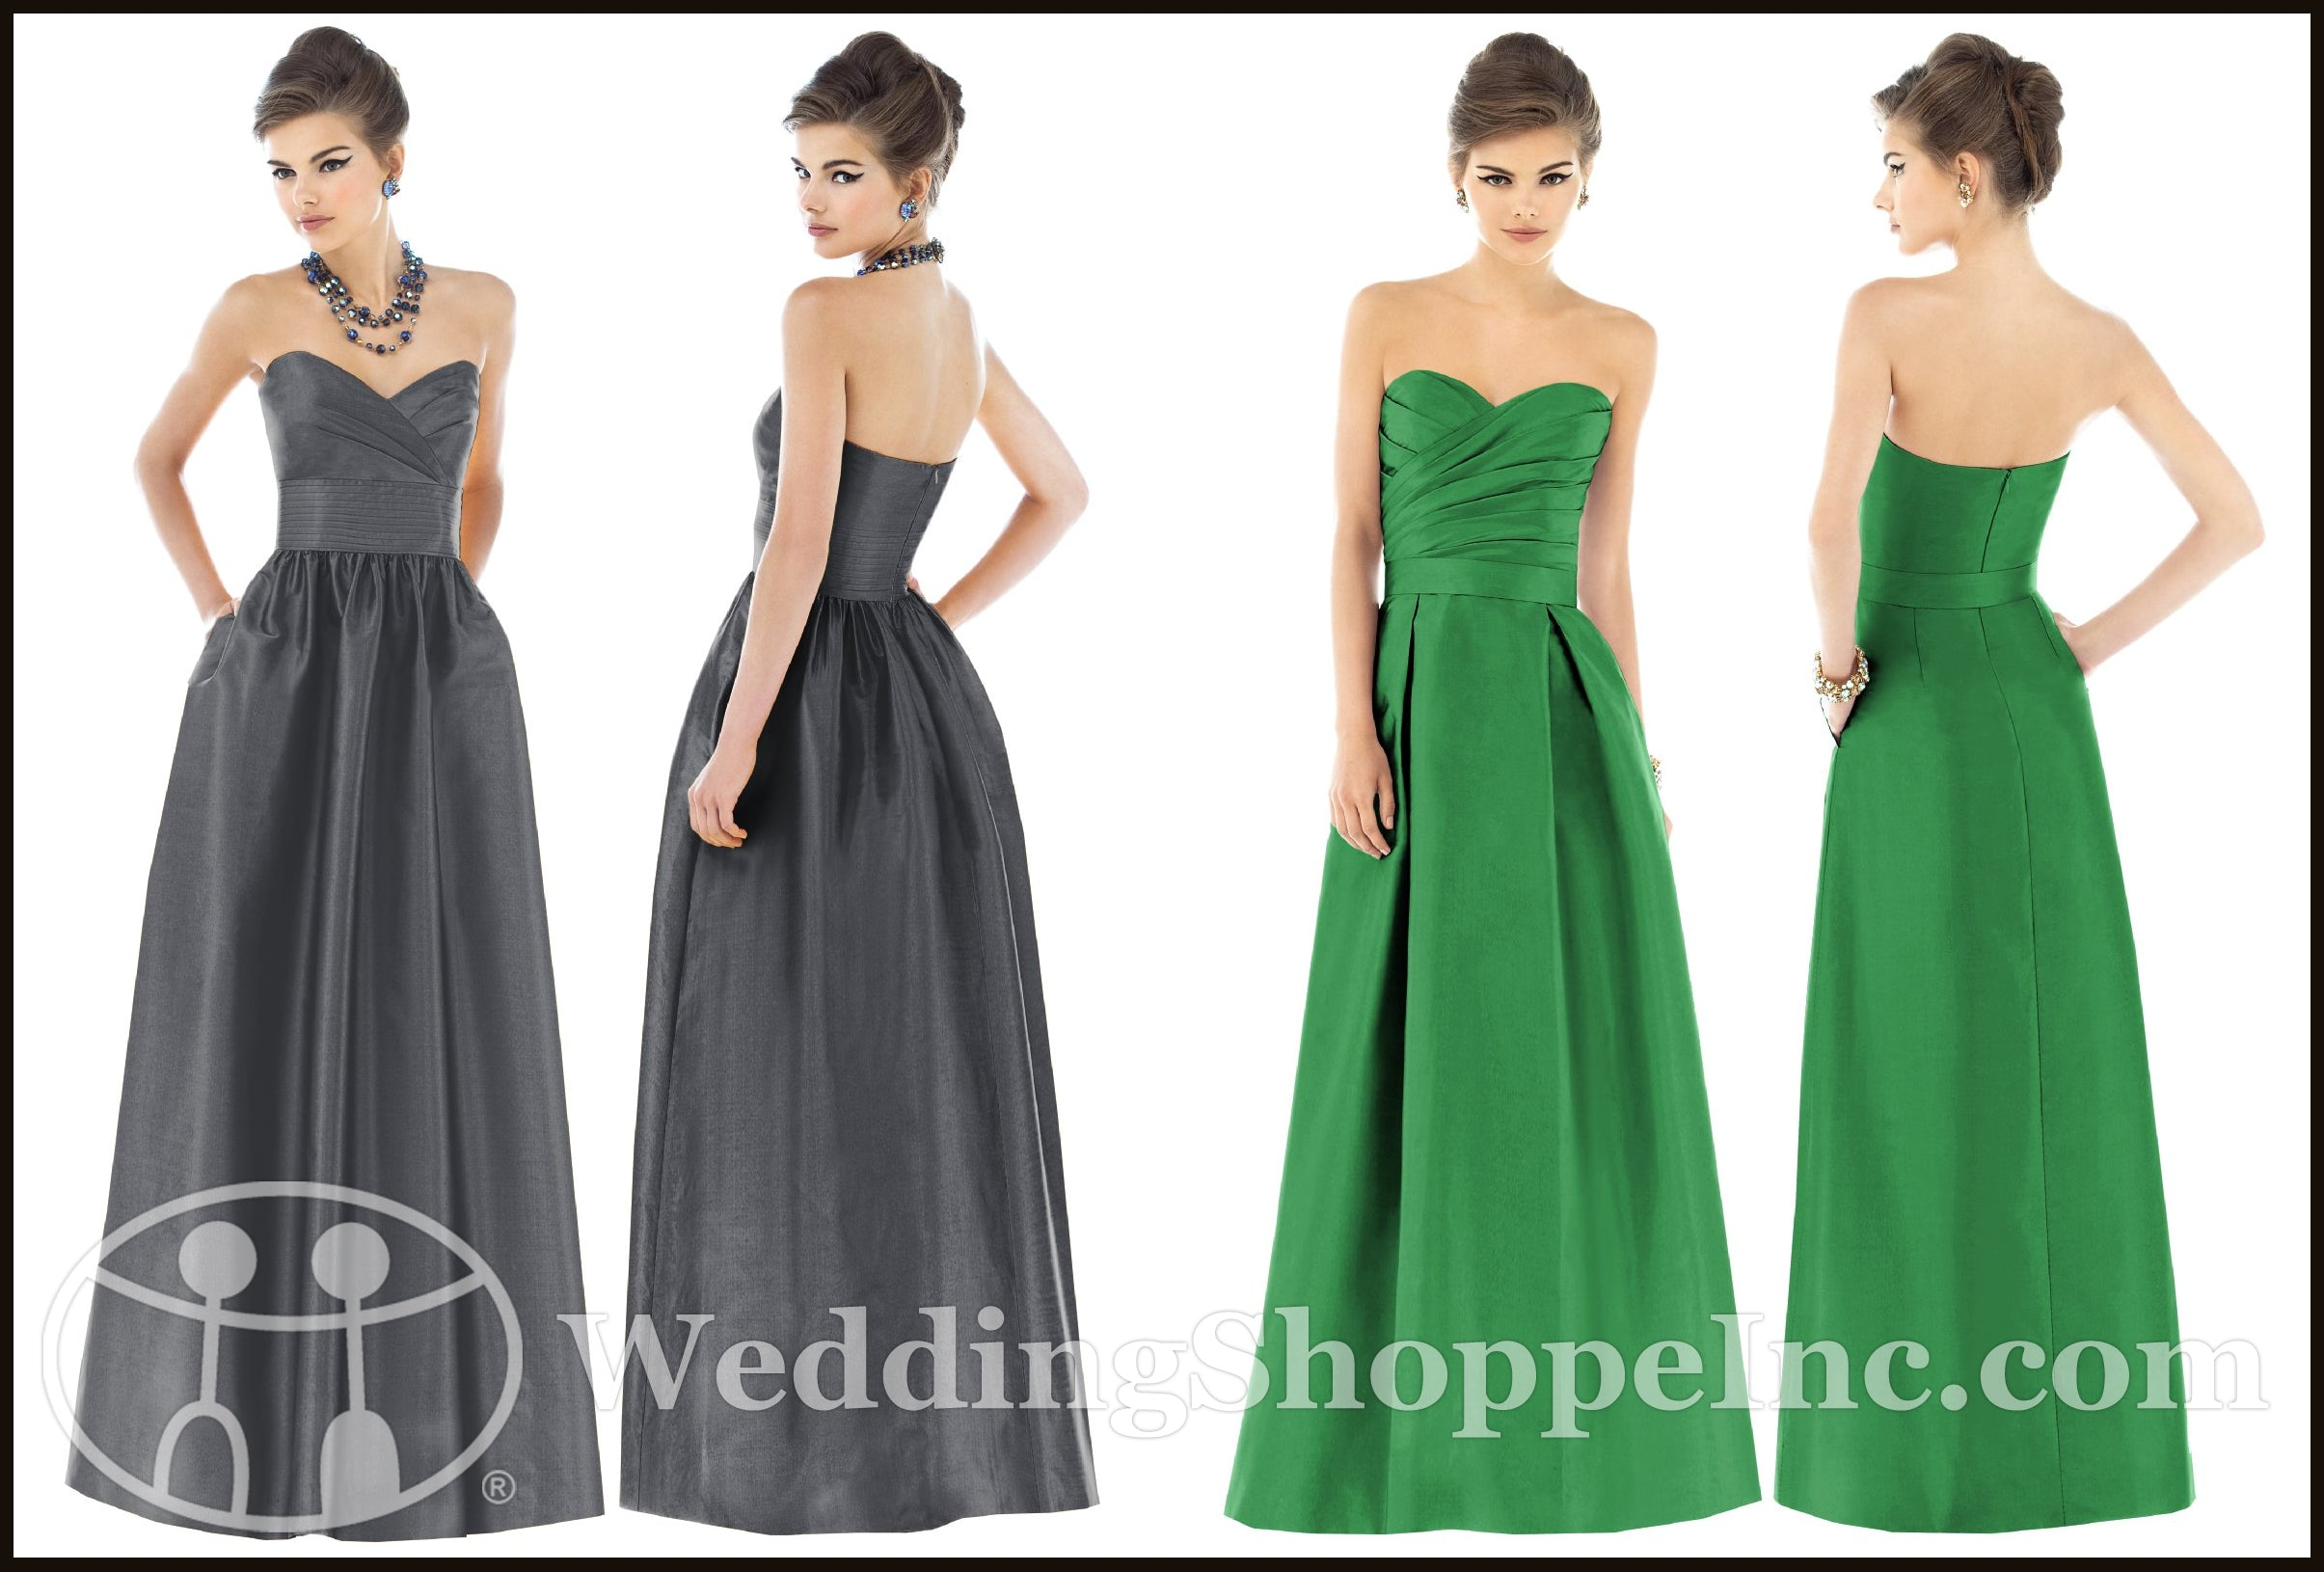 Popular Bridesmaid Gowns Featuring Alfred Sung Dresses